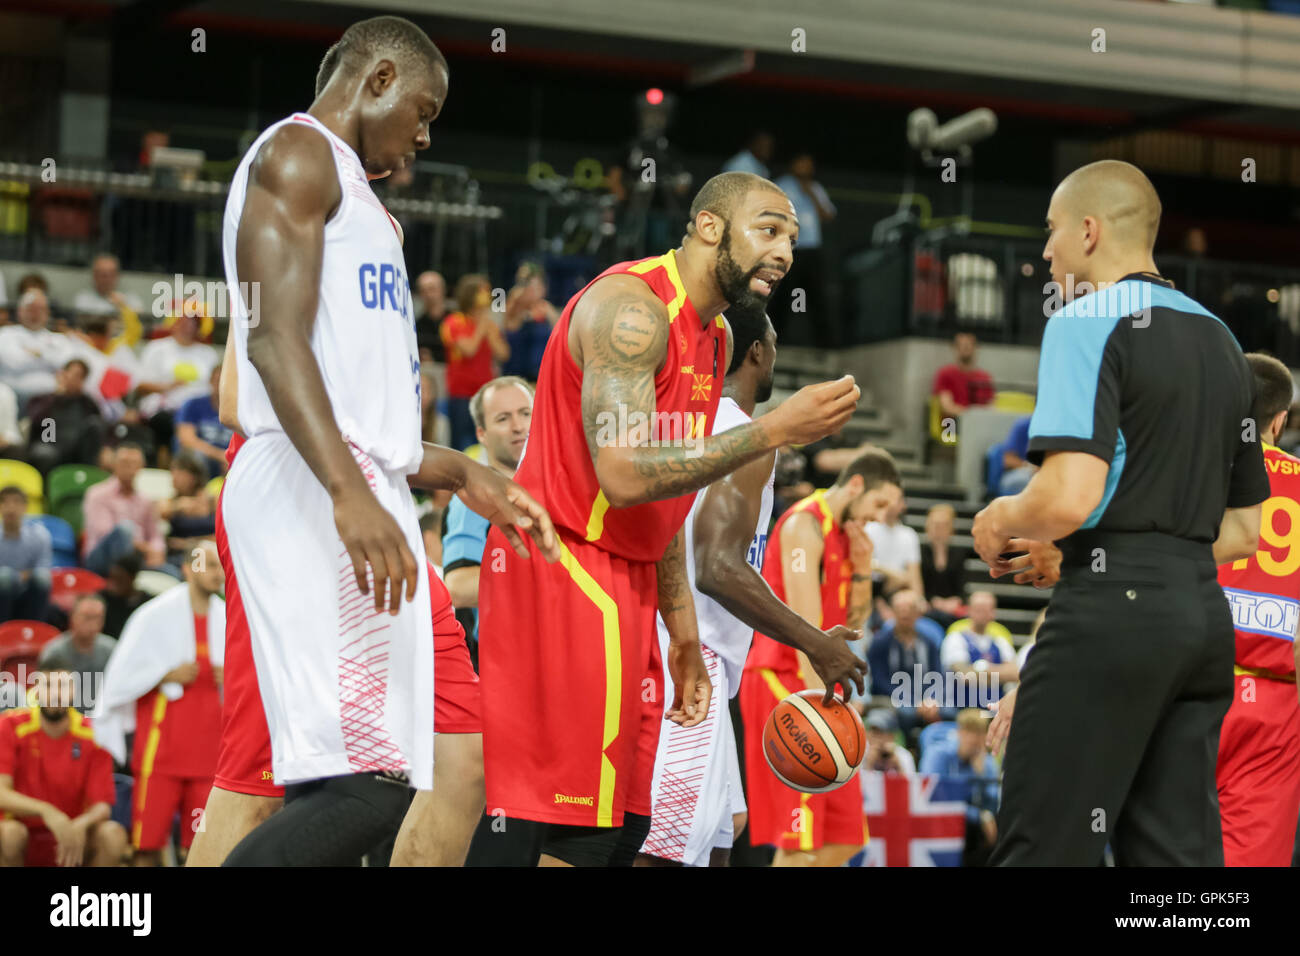 London, UK. 3rd. September, 2016. Macedonia player no 24, Travis in discussion with the referee. Team GB play Macedonia Stock Photo